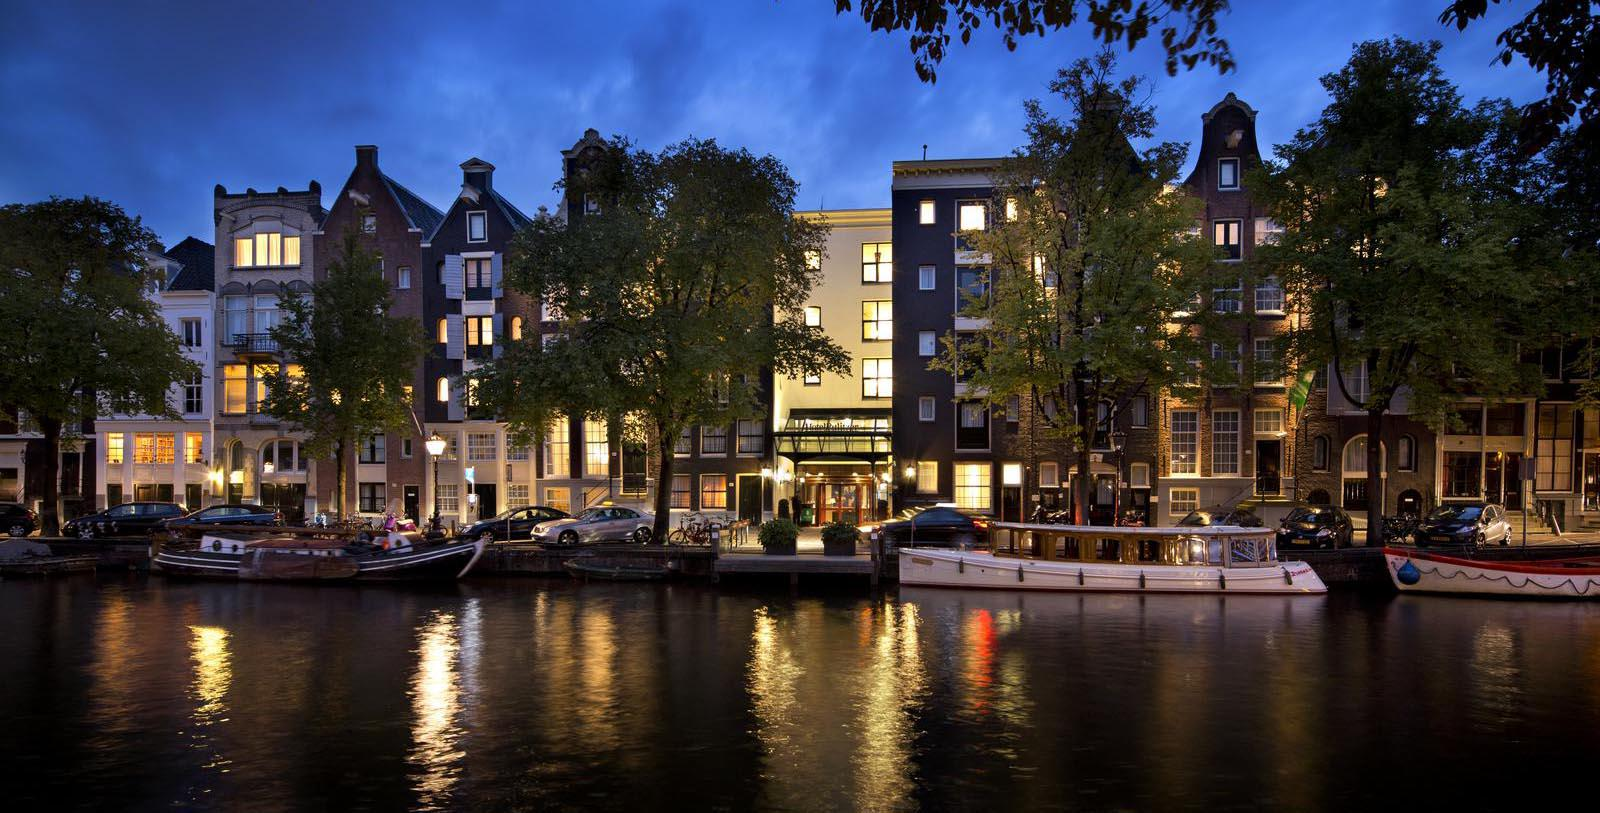 Image of Hotel Exterior Pulitzer Amsterdam, 17th Century, Member of Historic Hotels Worldwide, in Amsterdam, Netherlands, Special Offers, Discounted Rates, Families, Romantic Escape, Honeymoons, Anniversaries, Reunions